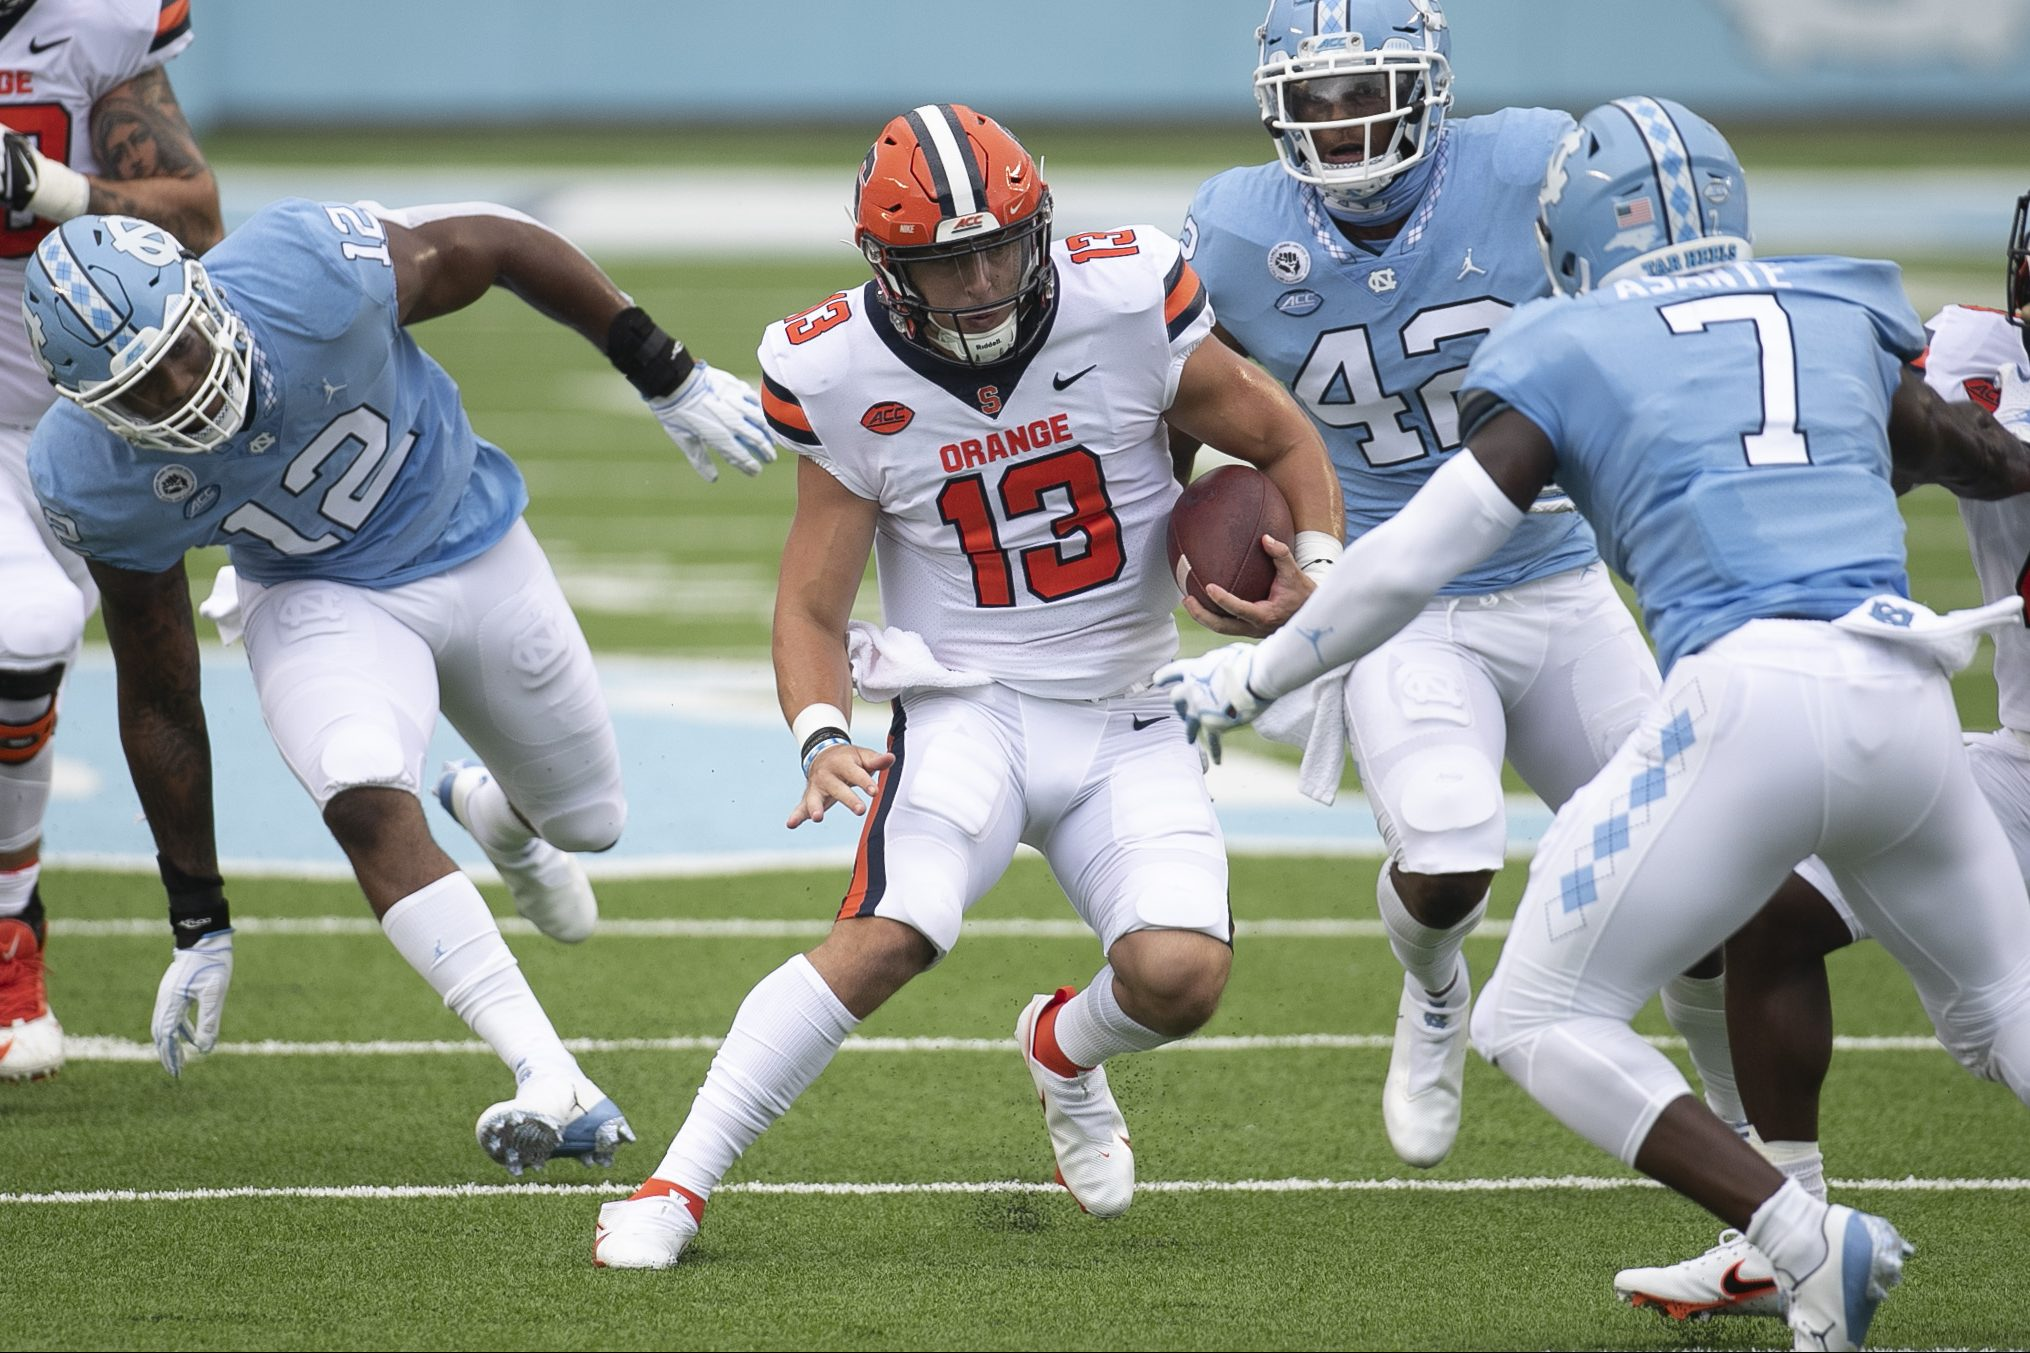 Syracuse quarterback Tommy DeVito (13) looks for running room against North Carolina's Eugene Asanti (7) during the second quarter in Kenan Stadium on Saturday, September 12, 2020 in Chapel Hill, N.C.